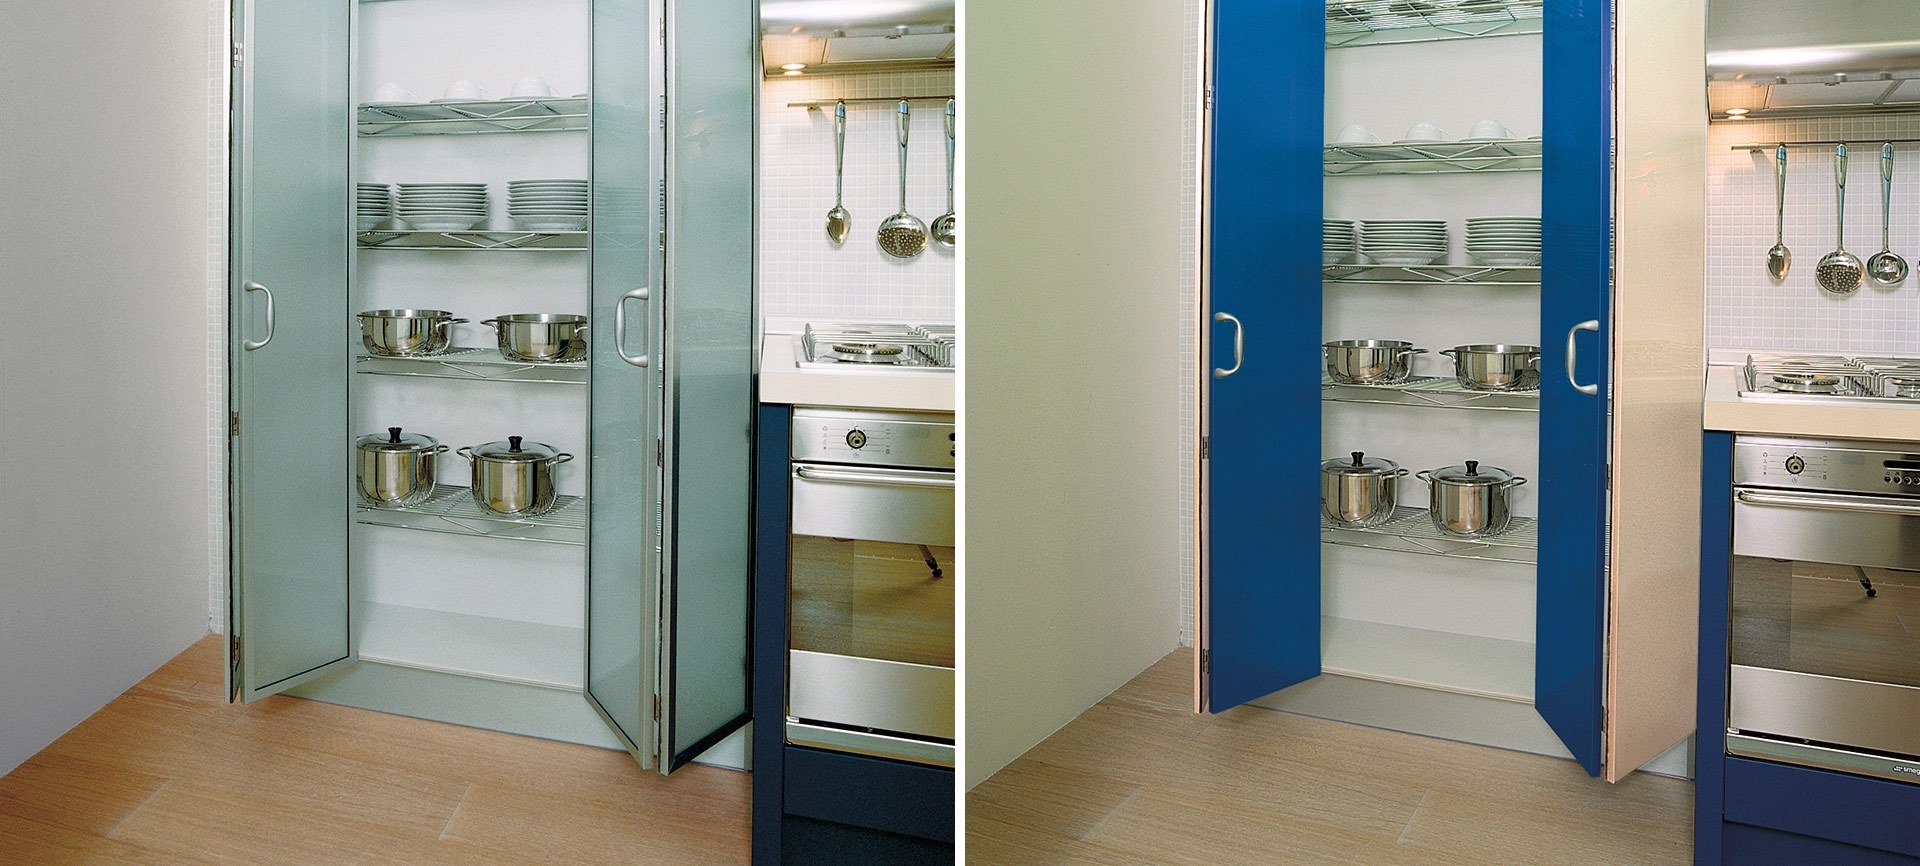 Sliding system for concertina doors